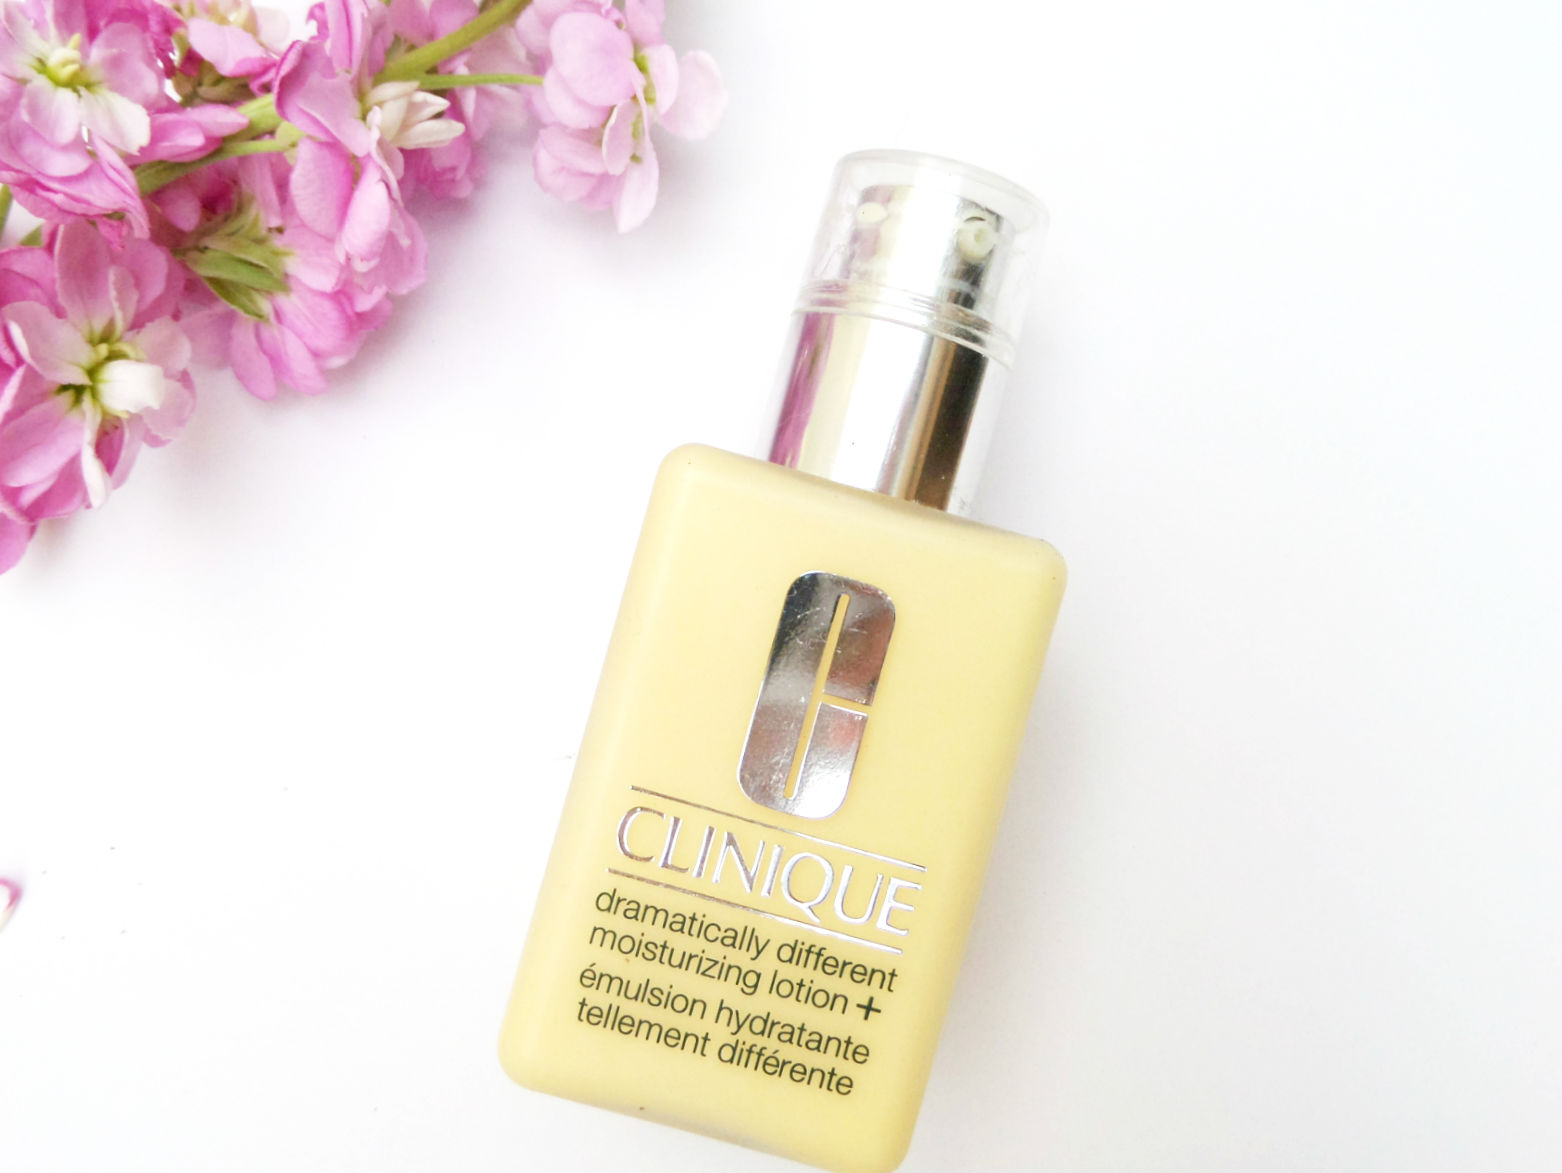 Clinique Dramatically Different Moisturising Lotion Review